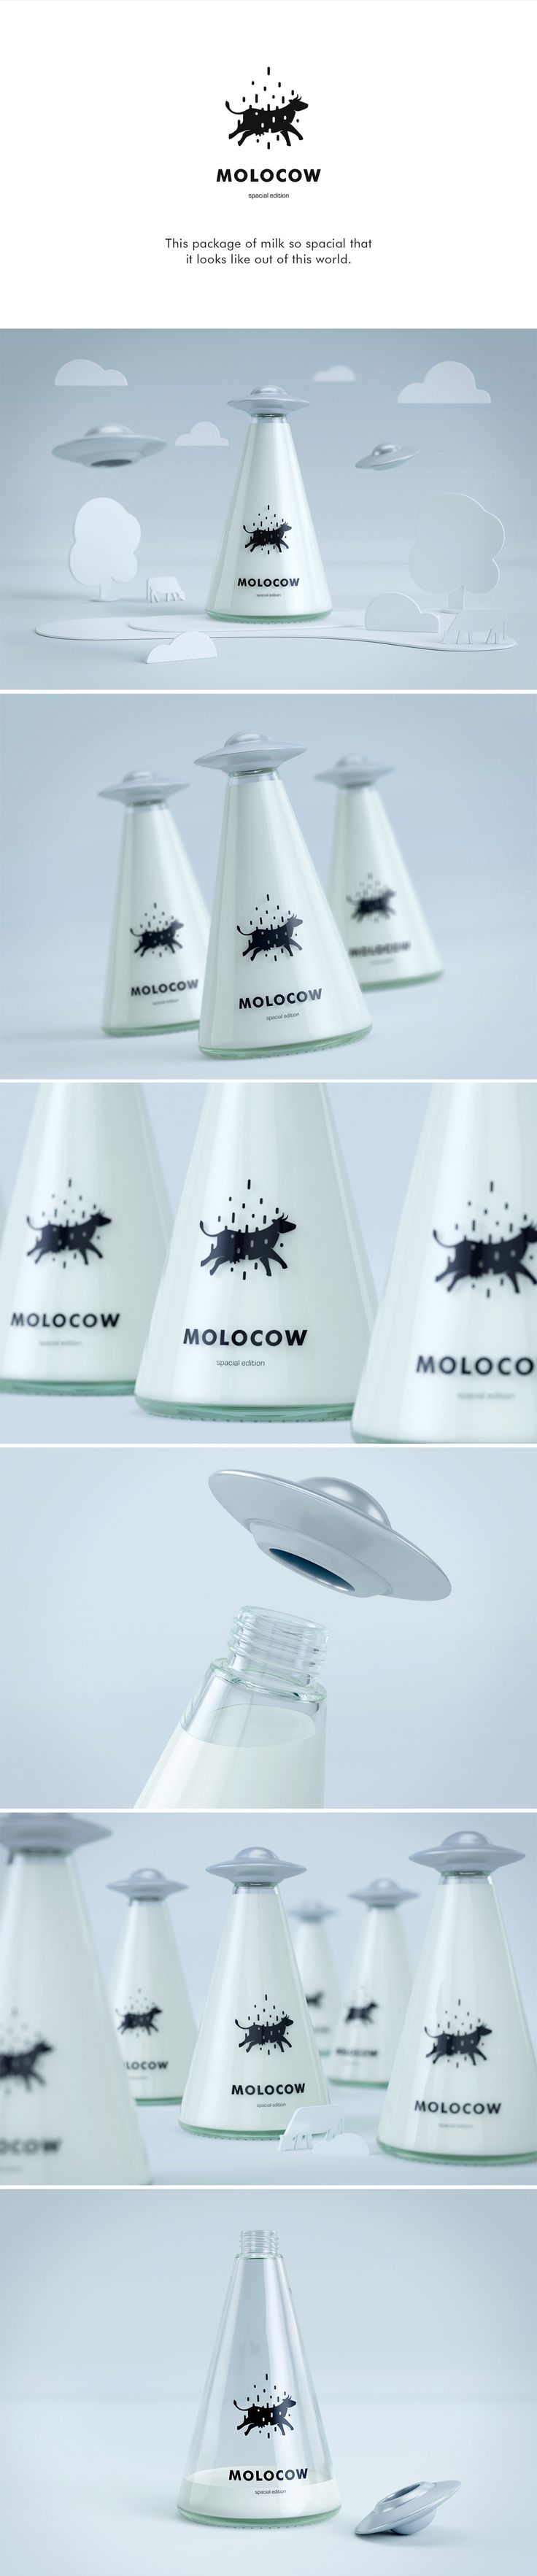 Molocow is a fun concept package for milk. We reimagined milk bottle and package to appeal for kids.